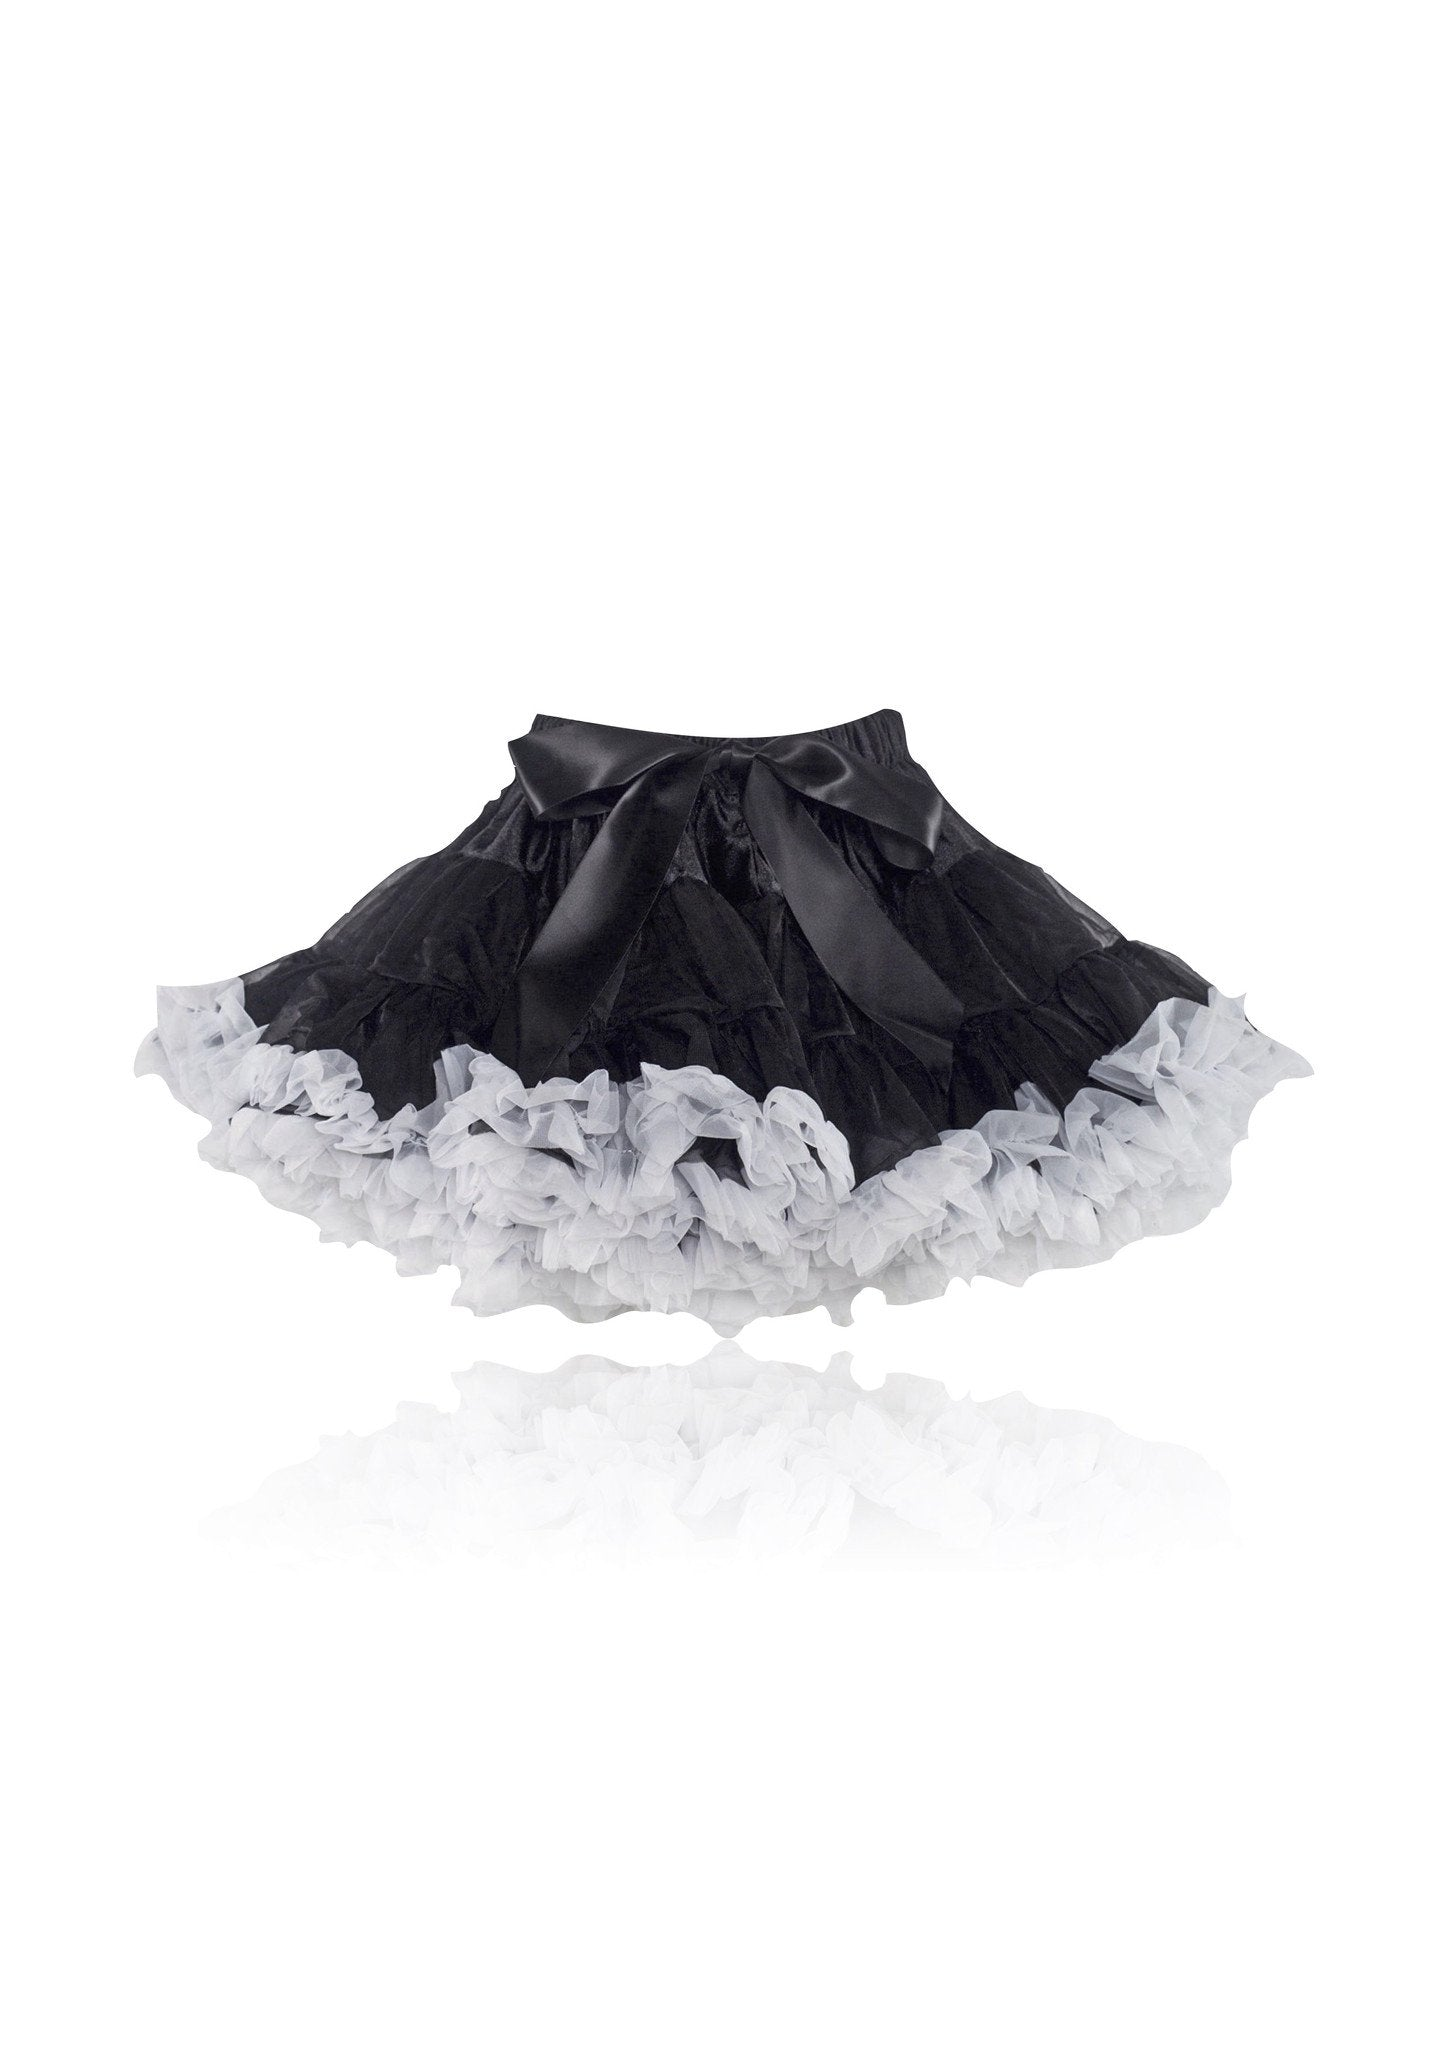 DOLLY by Le Petit Tom ® BLACK BEAUTY pettiskirt black white - DOLLY by Le Petit Tom ®